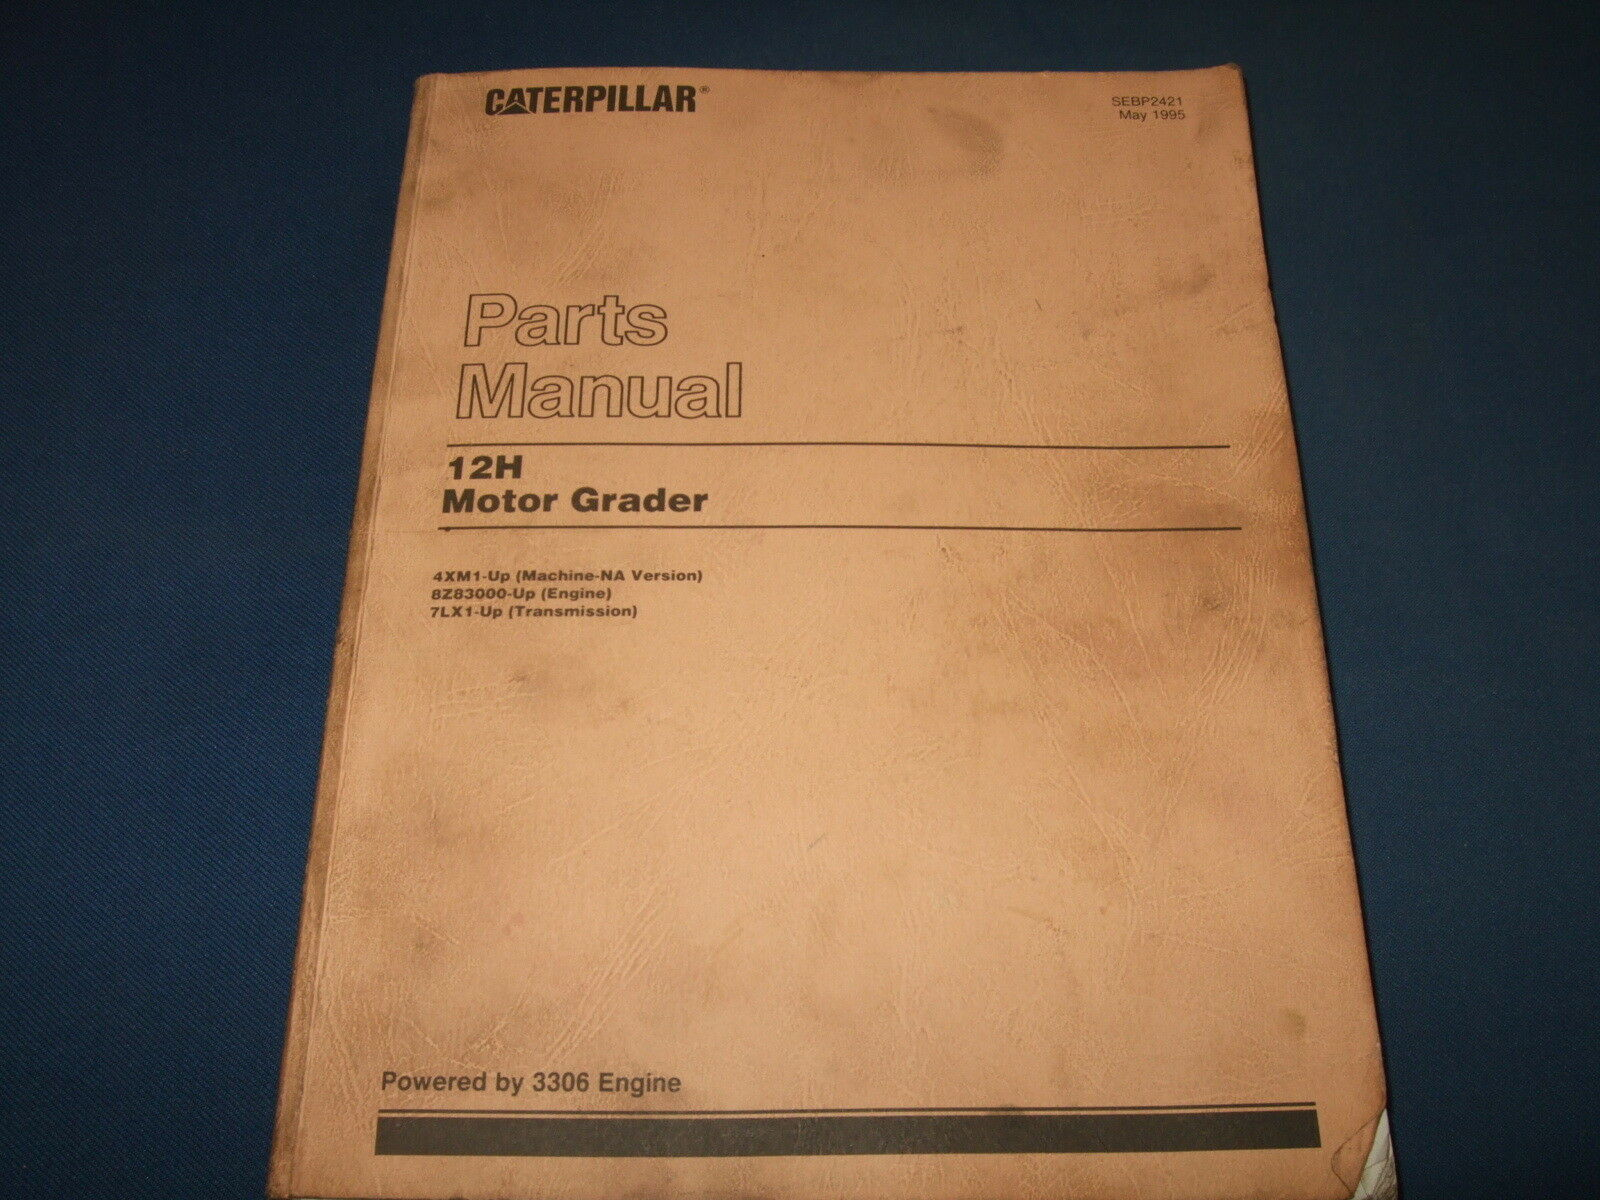 Cat Caterpillar 12H Motor Grader Parts Book Manual S/n 4Xm1-Up 1 of 3Only 1  available ...